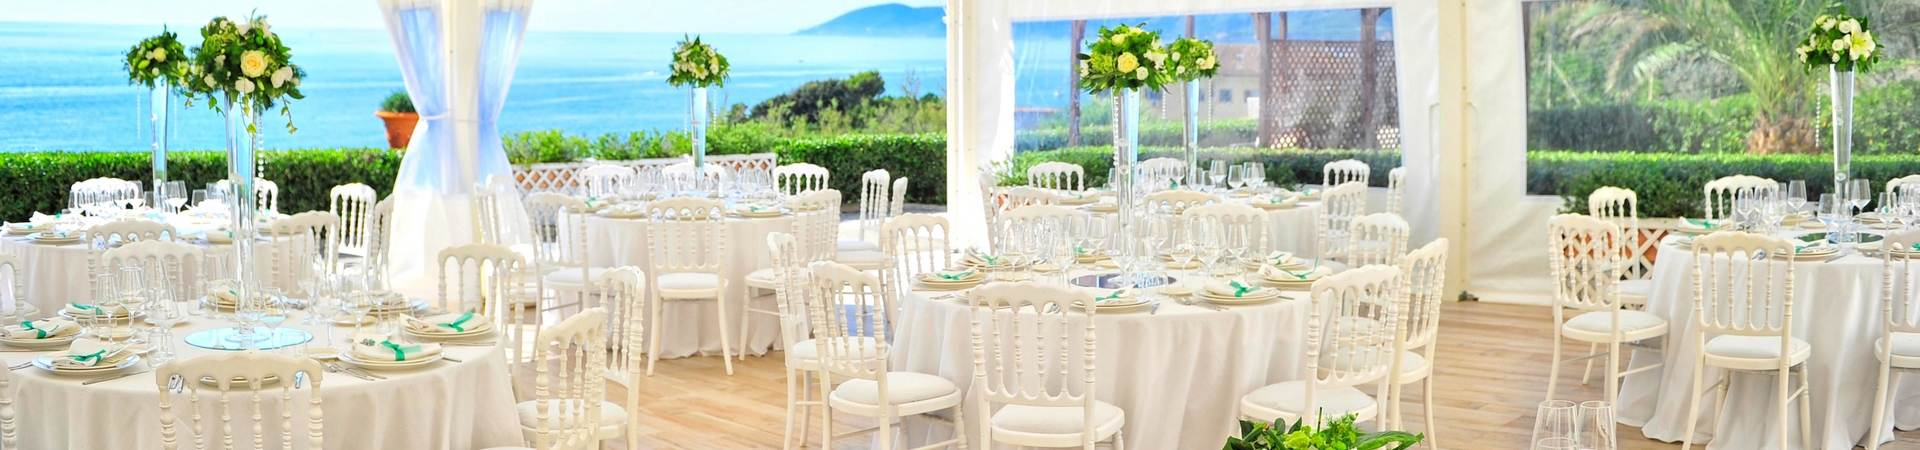 Wedding Tablecloths, Spandex Table Covers